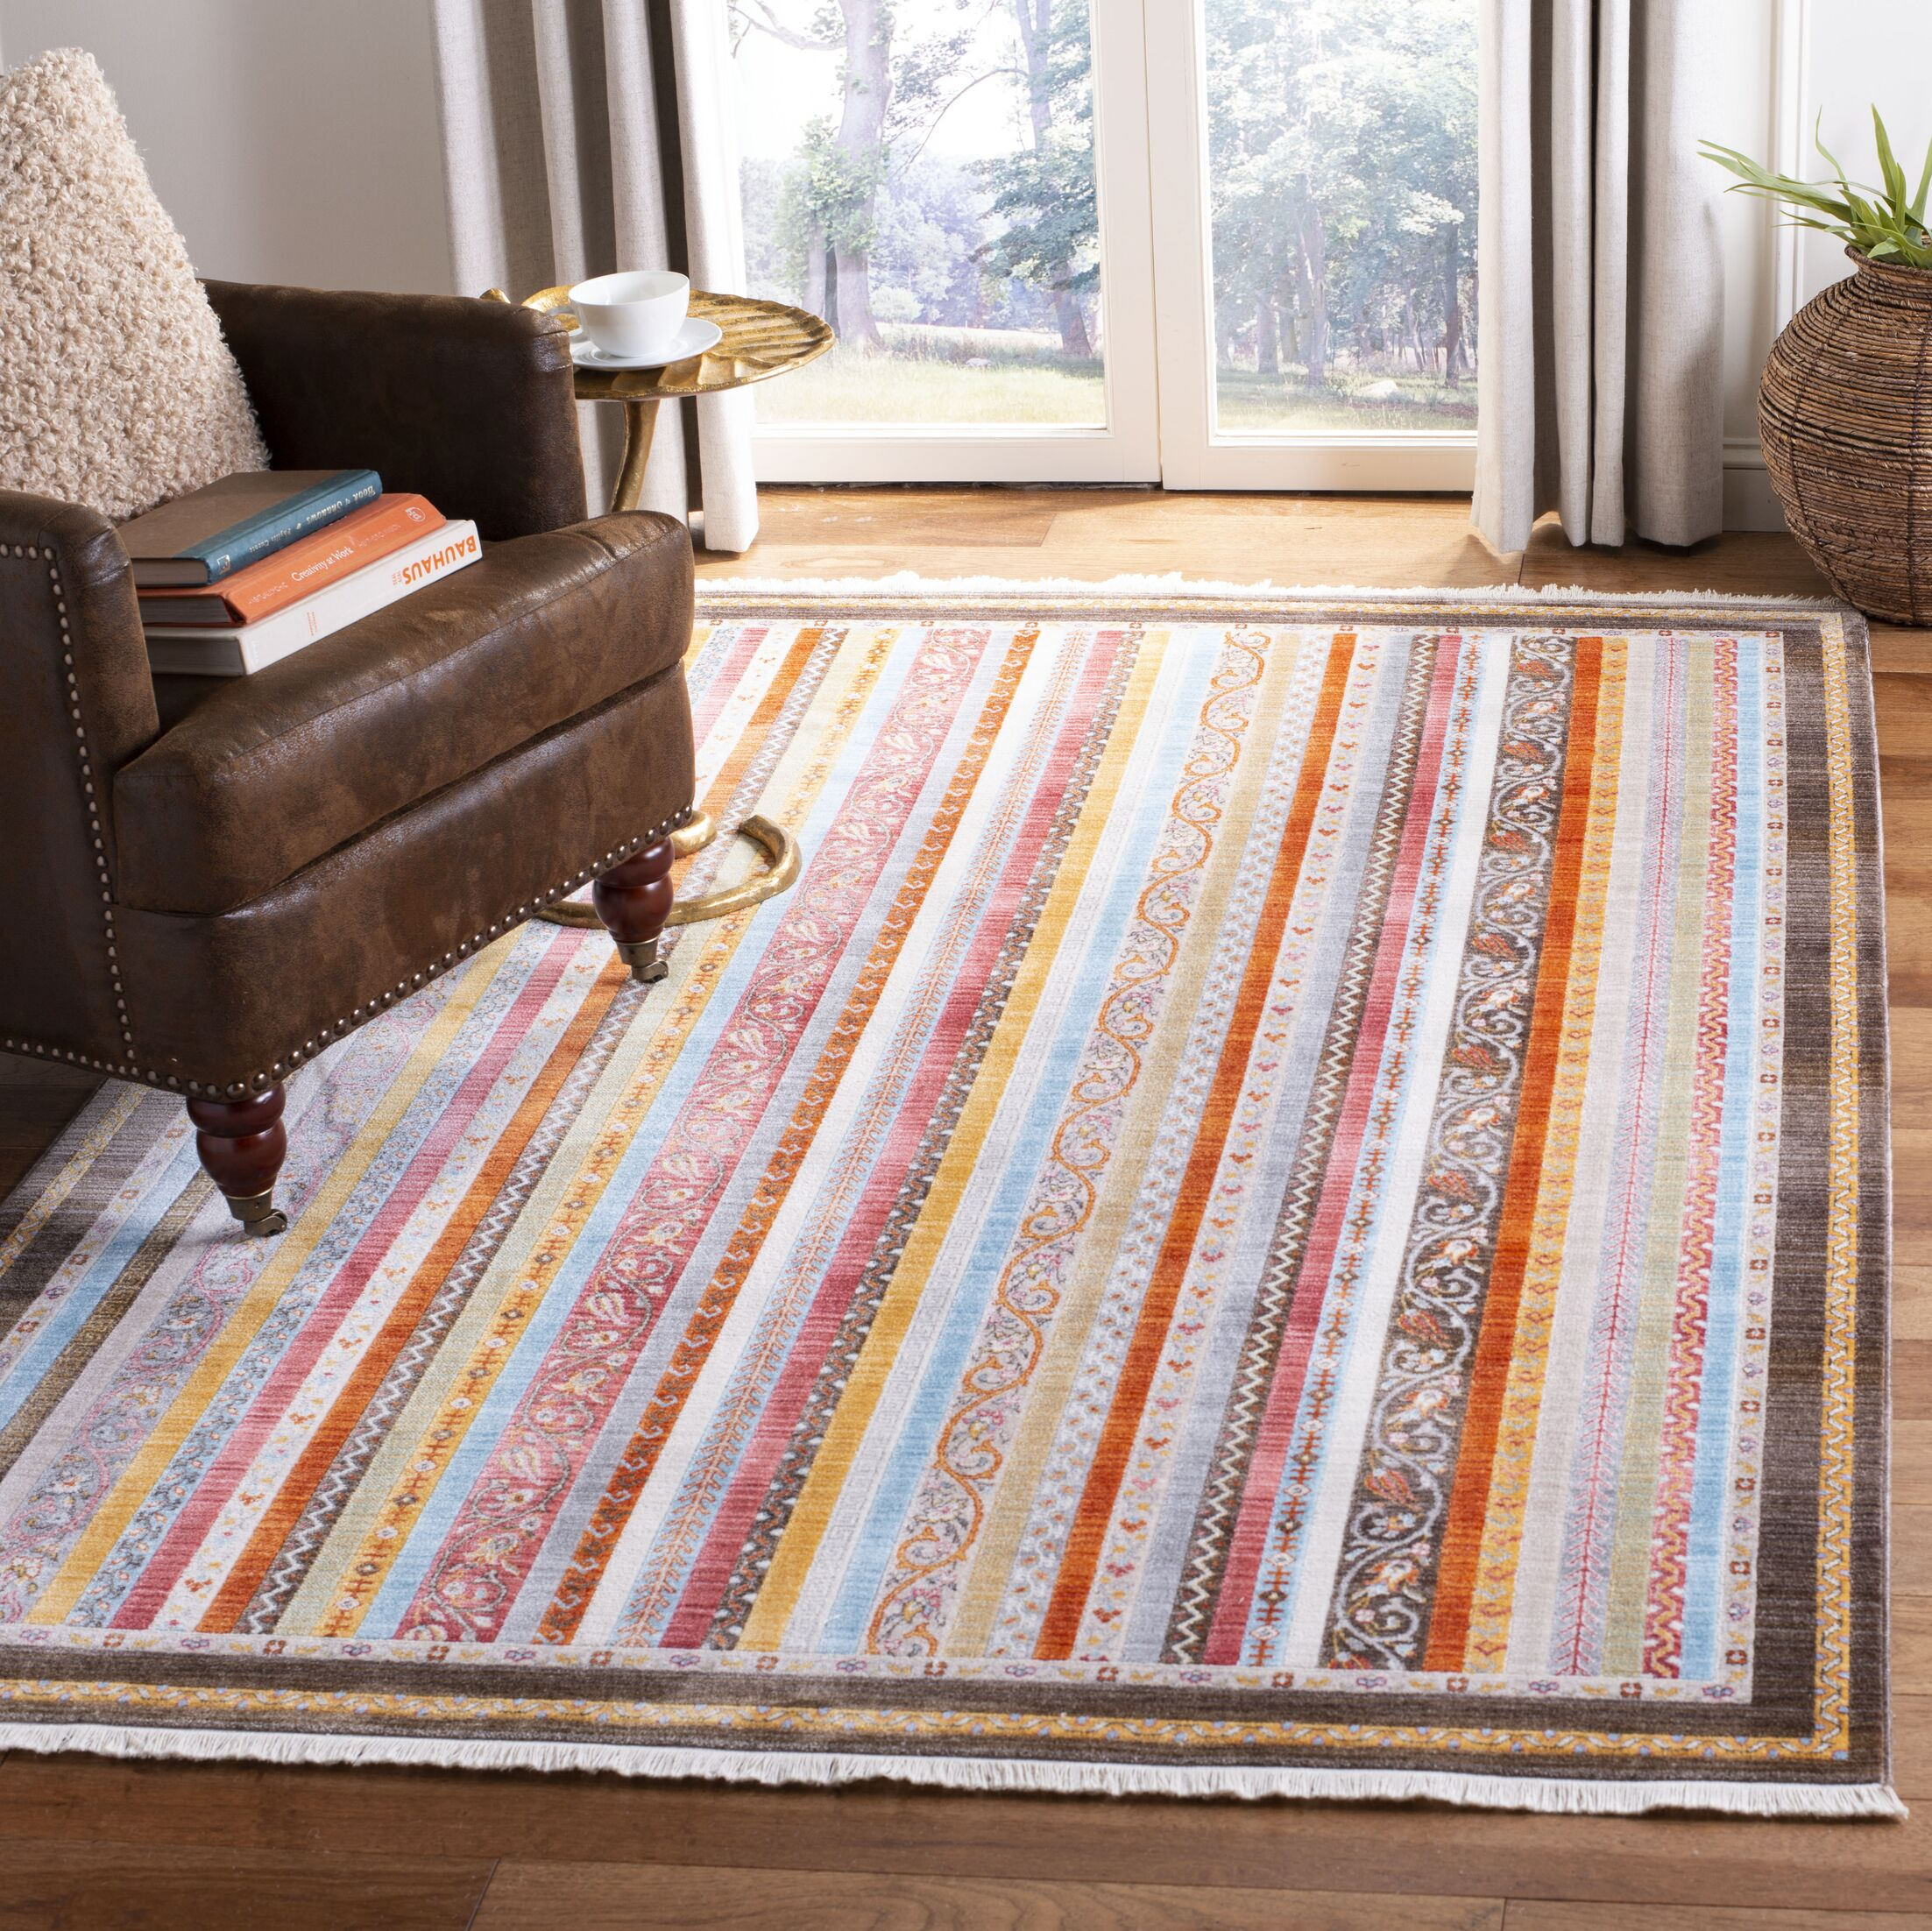 Poulsbo Cotton Brown/Yellow Area Rug Rug Size: Rectangle 9' X 11'7